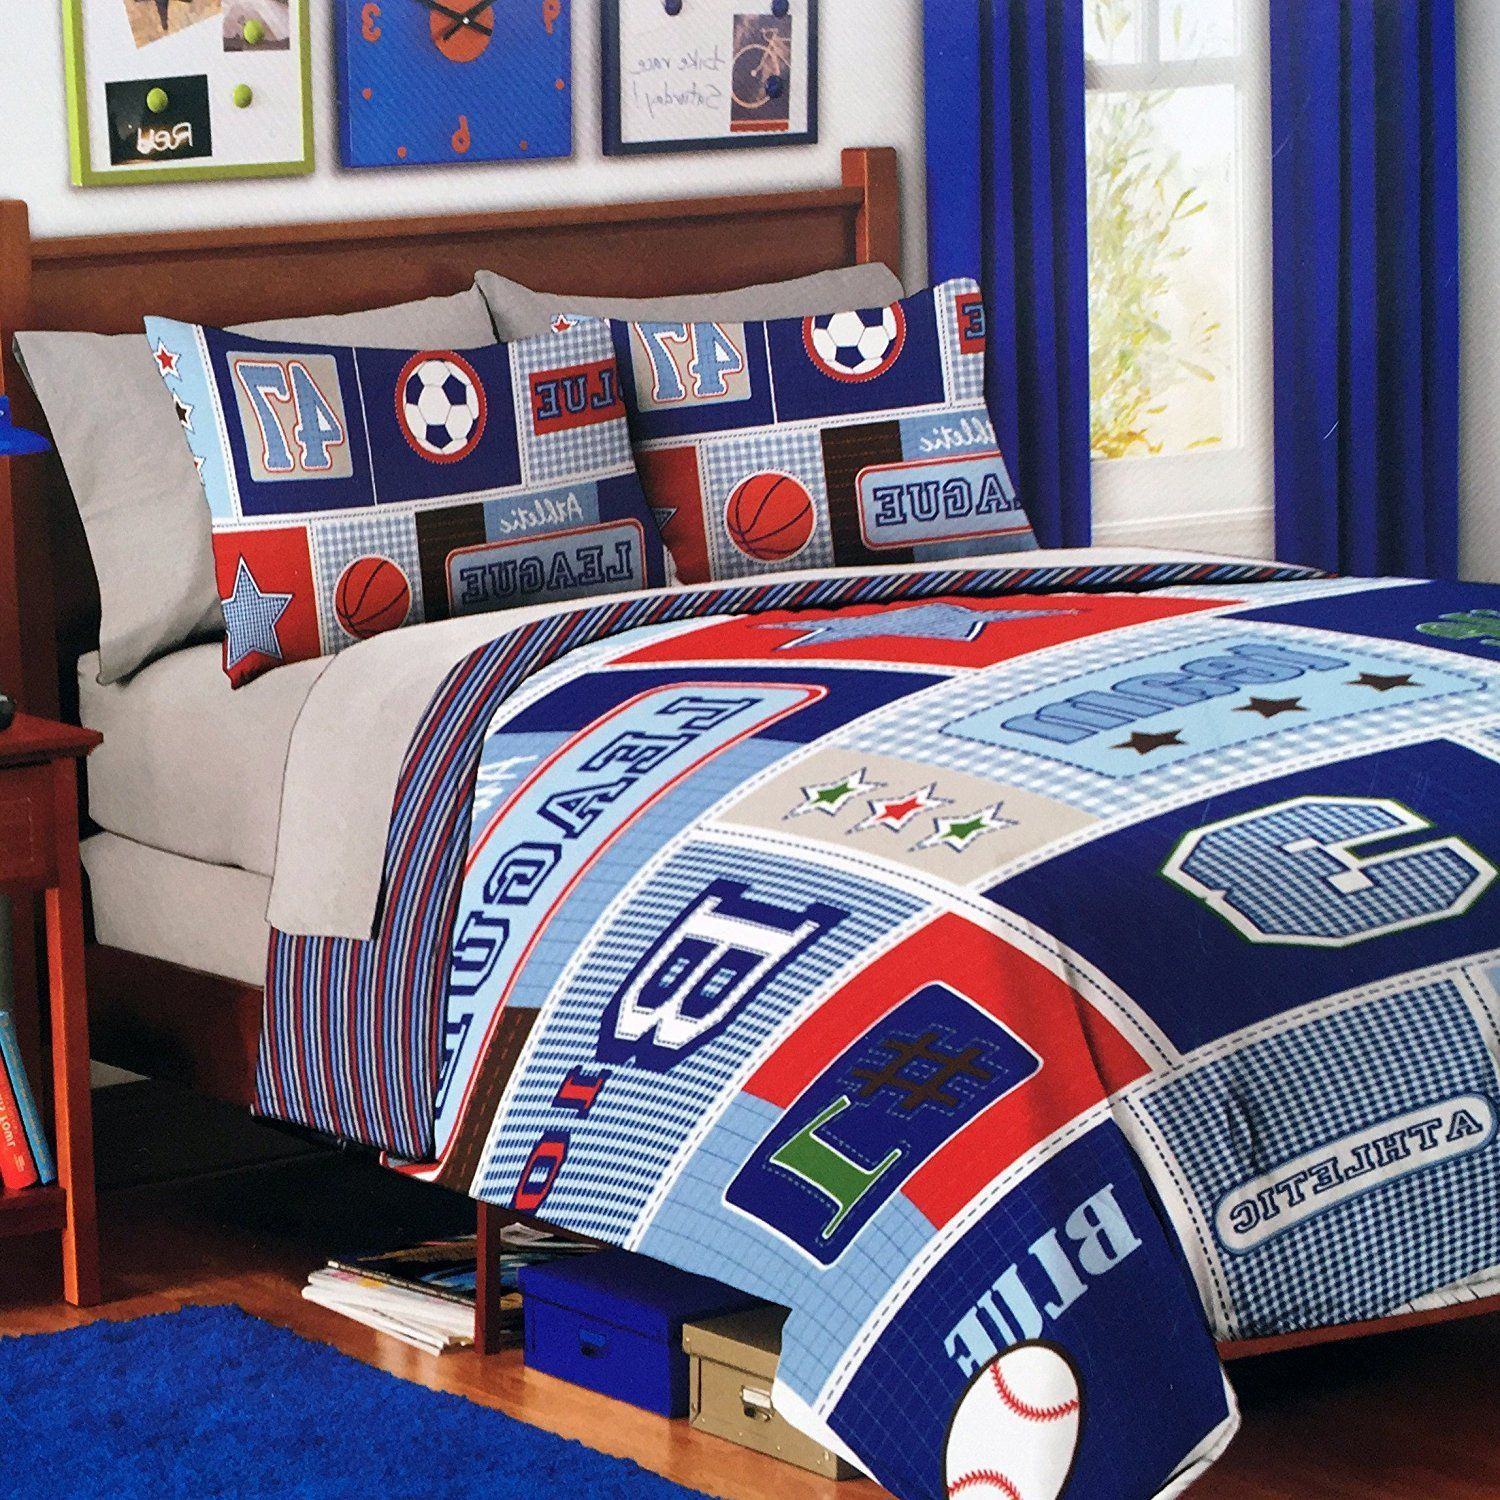 2 Piece Kids Sports Themed Comforter Twin Set All Sports Bedding For Boys Featuring Soccer Baseball Basketball Sports Bedding Boys Bedding Bed Linens Luxury